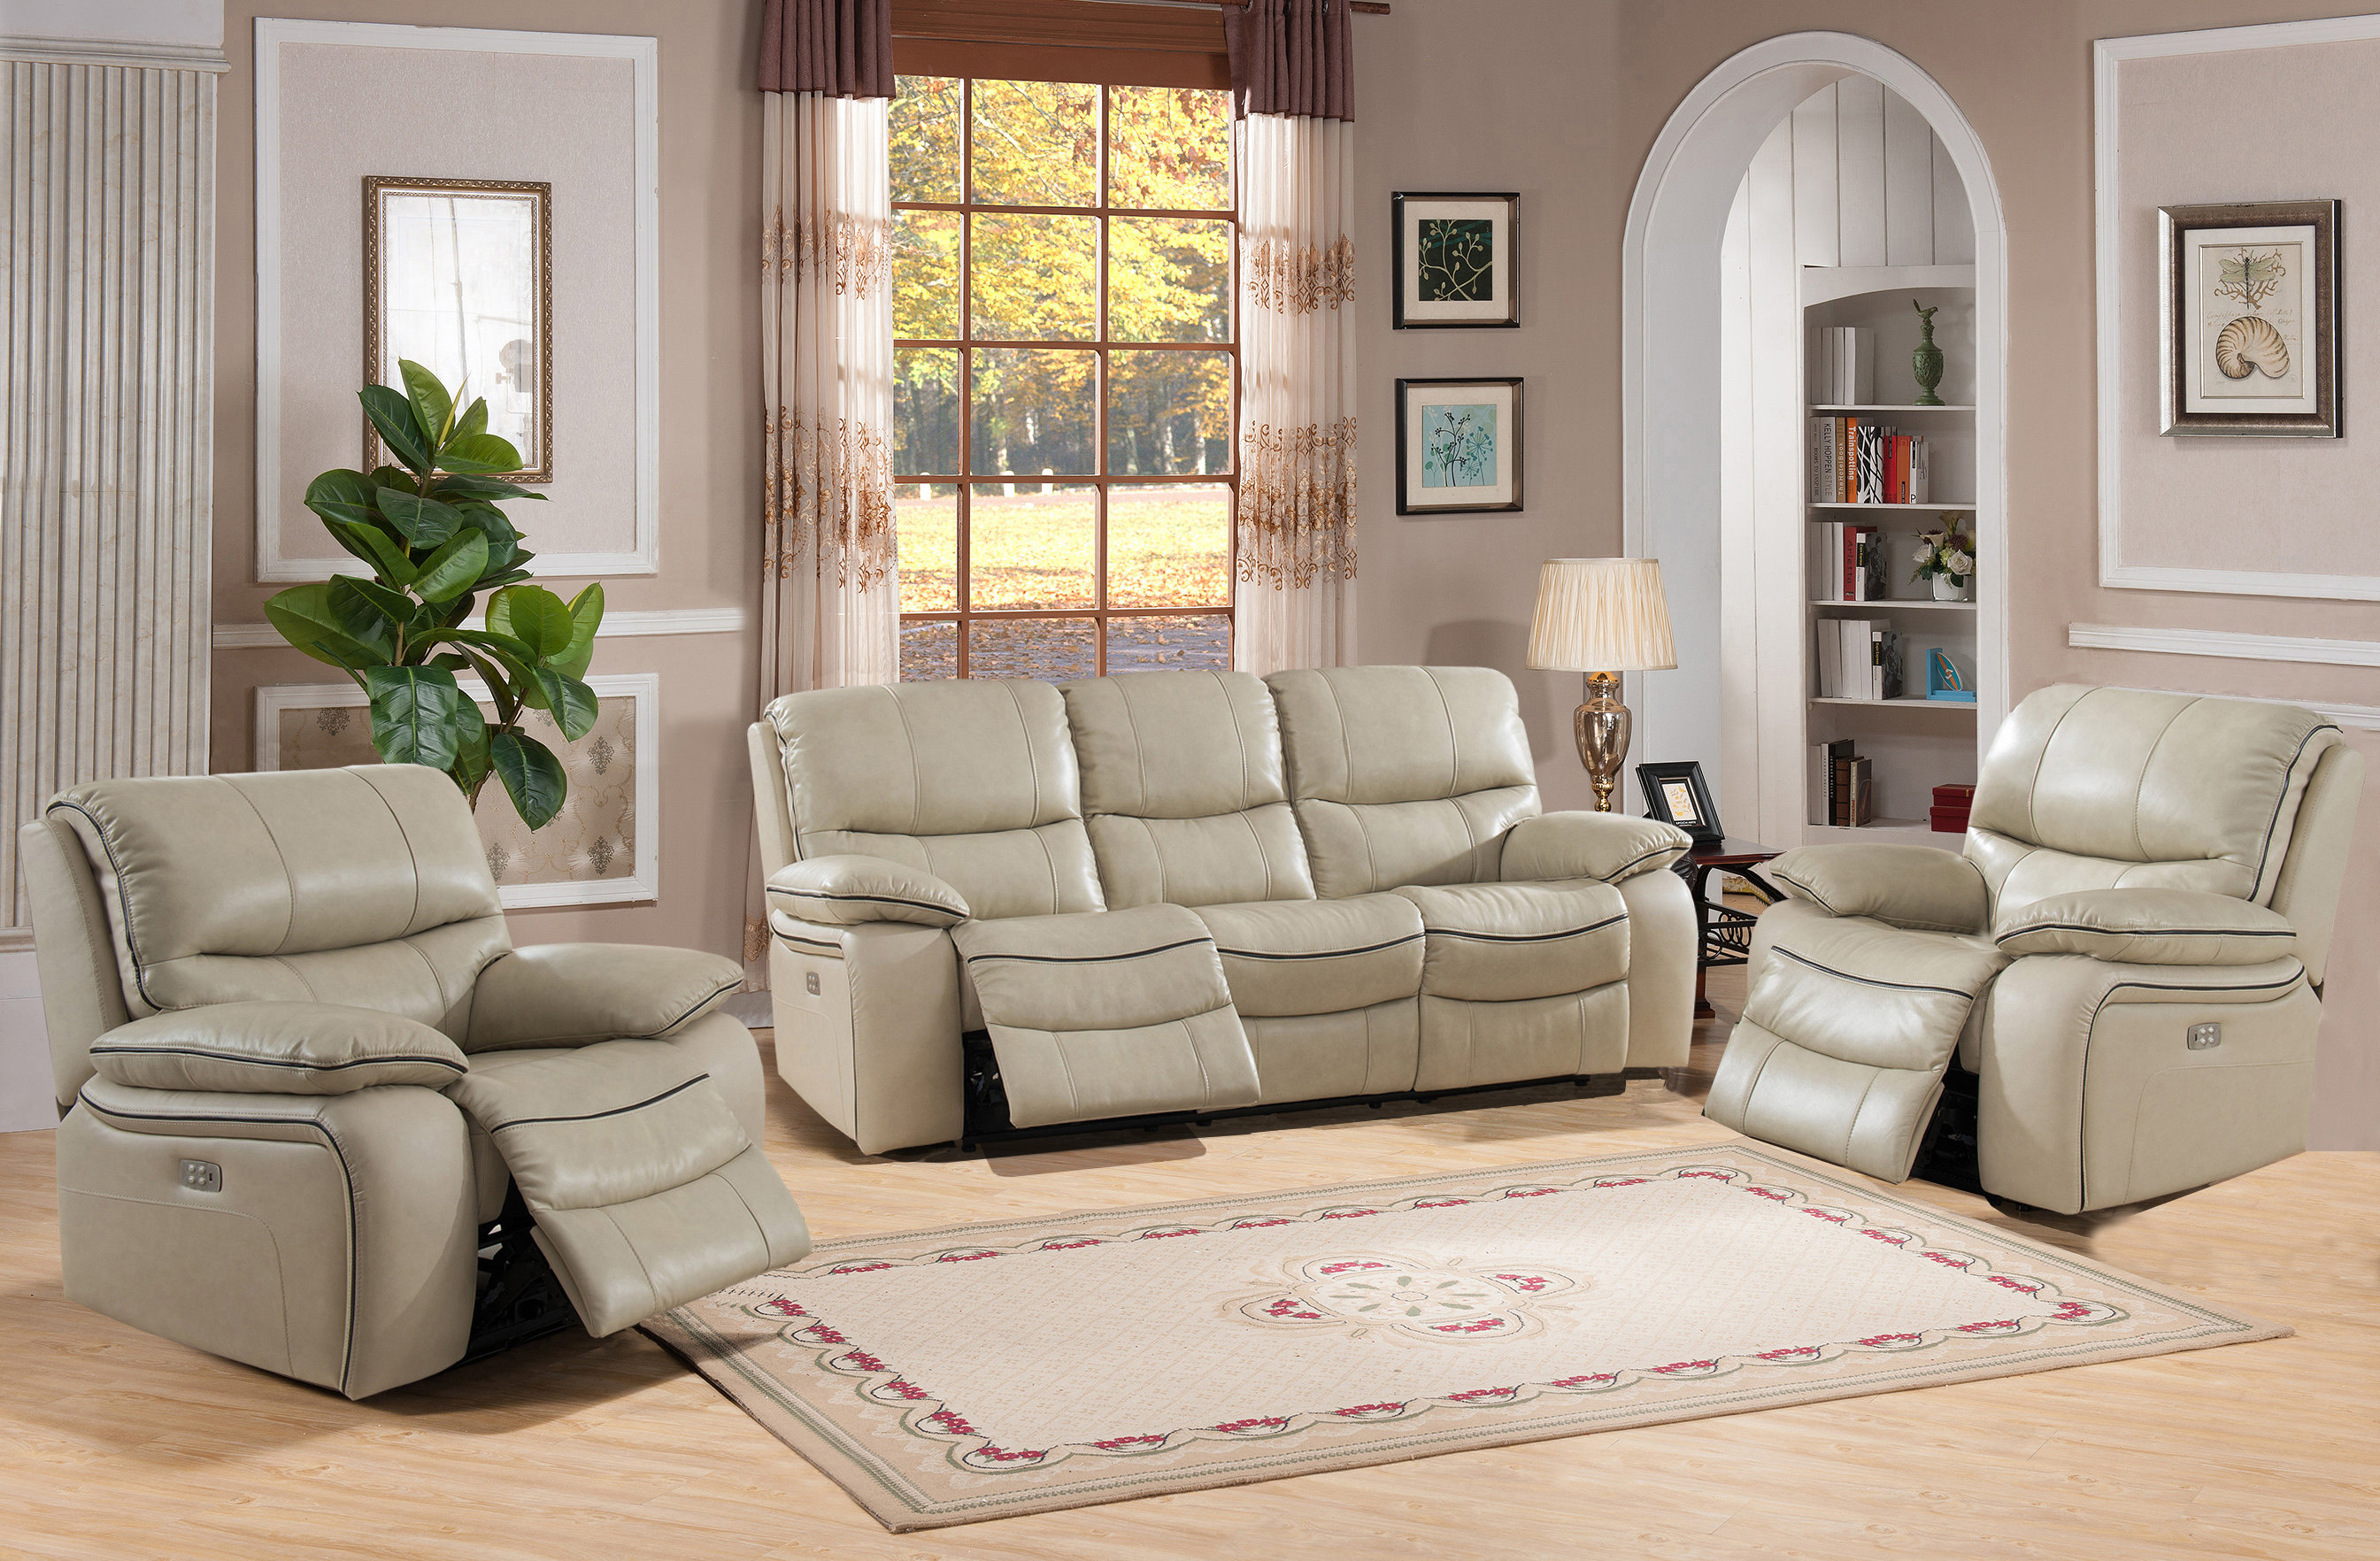 Red Barrel Studio Deshaun Reclining 3 Piece Leather Living Room Set in Beige Leather Living Room Set